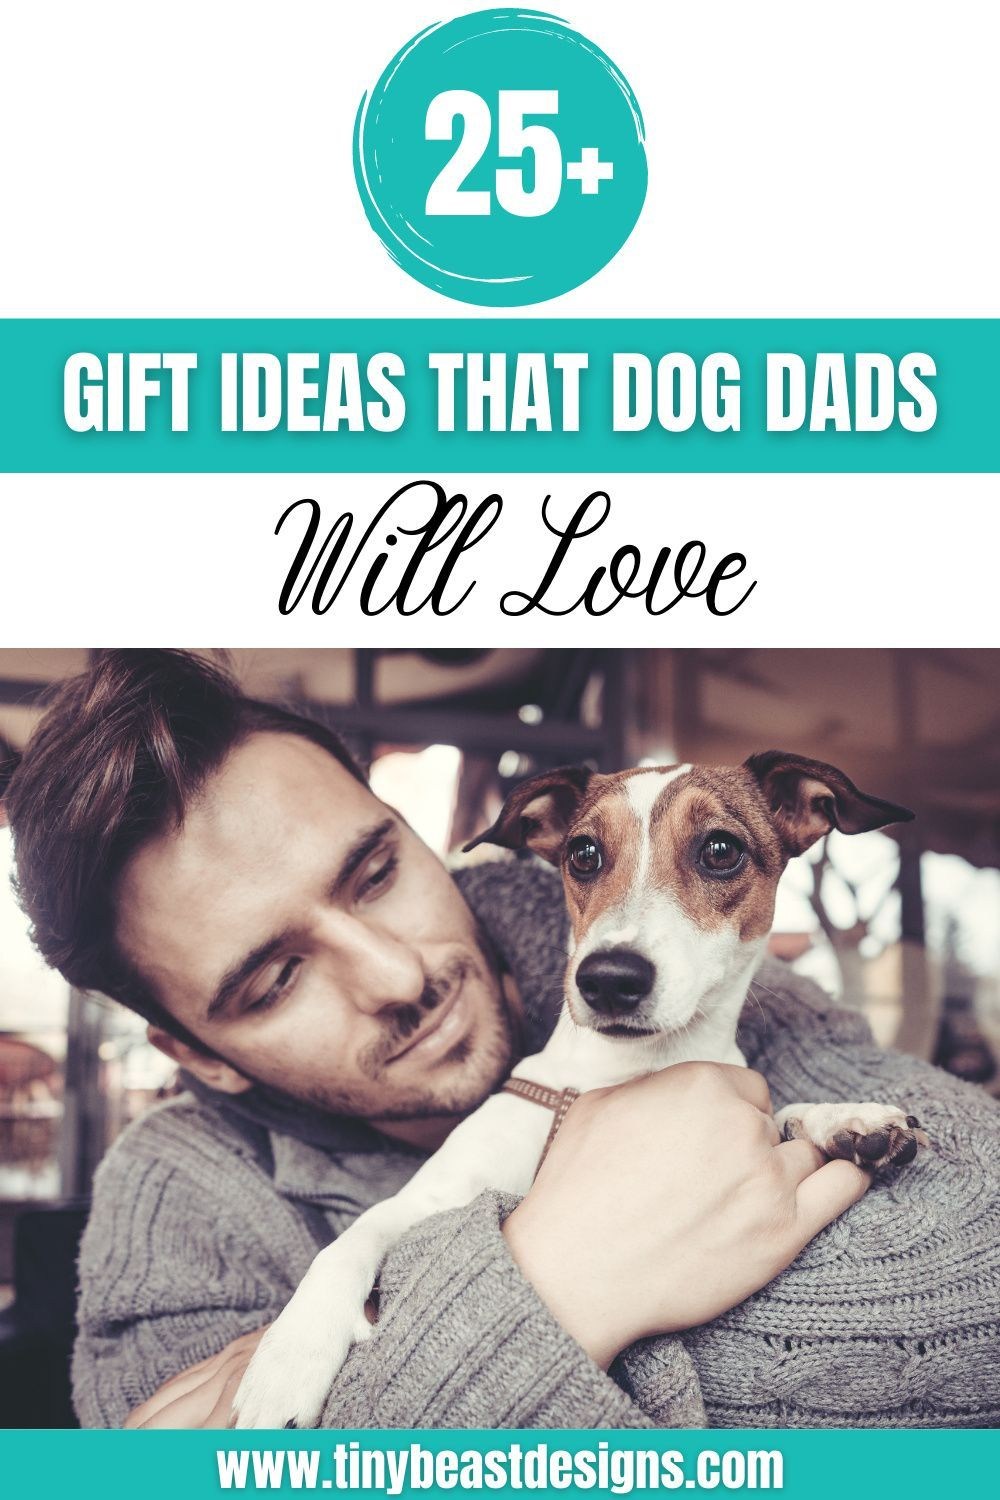 25 Barktastic Gift Ideas For Dog Dads In 2020 Dog Dad Gifts Dog Dad Best Dog Gifts